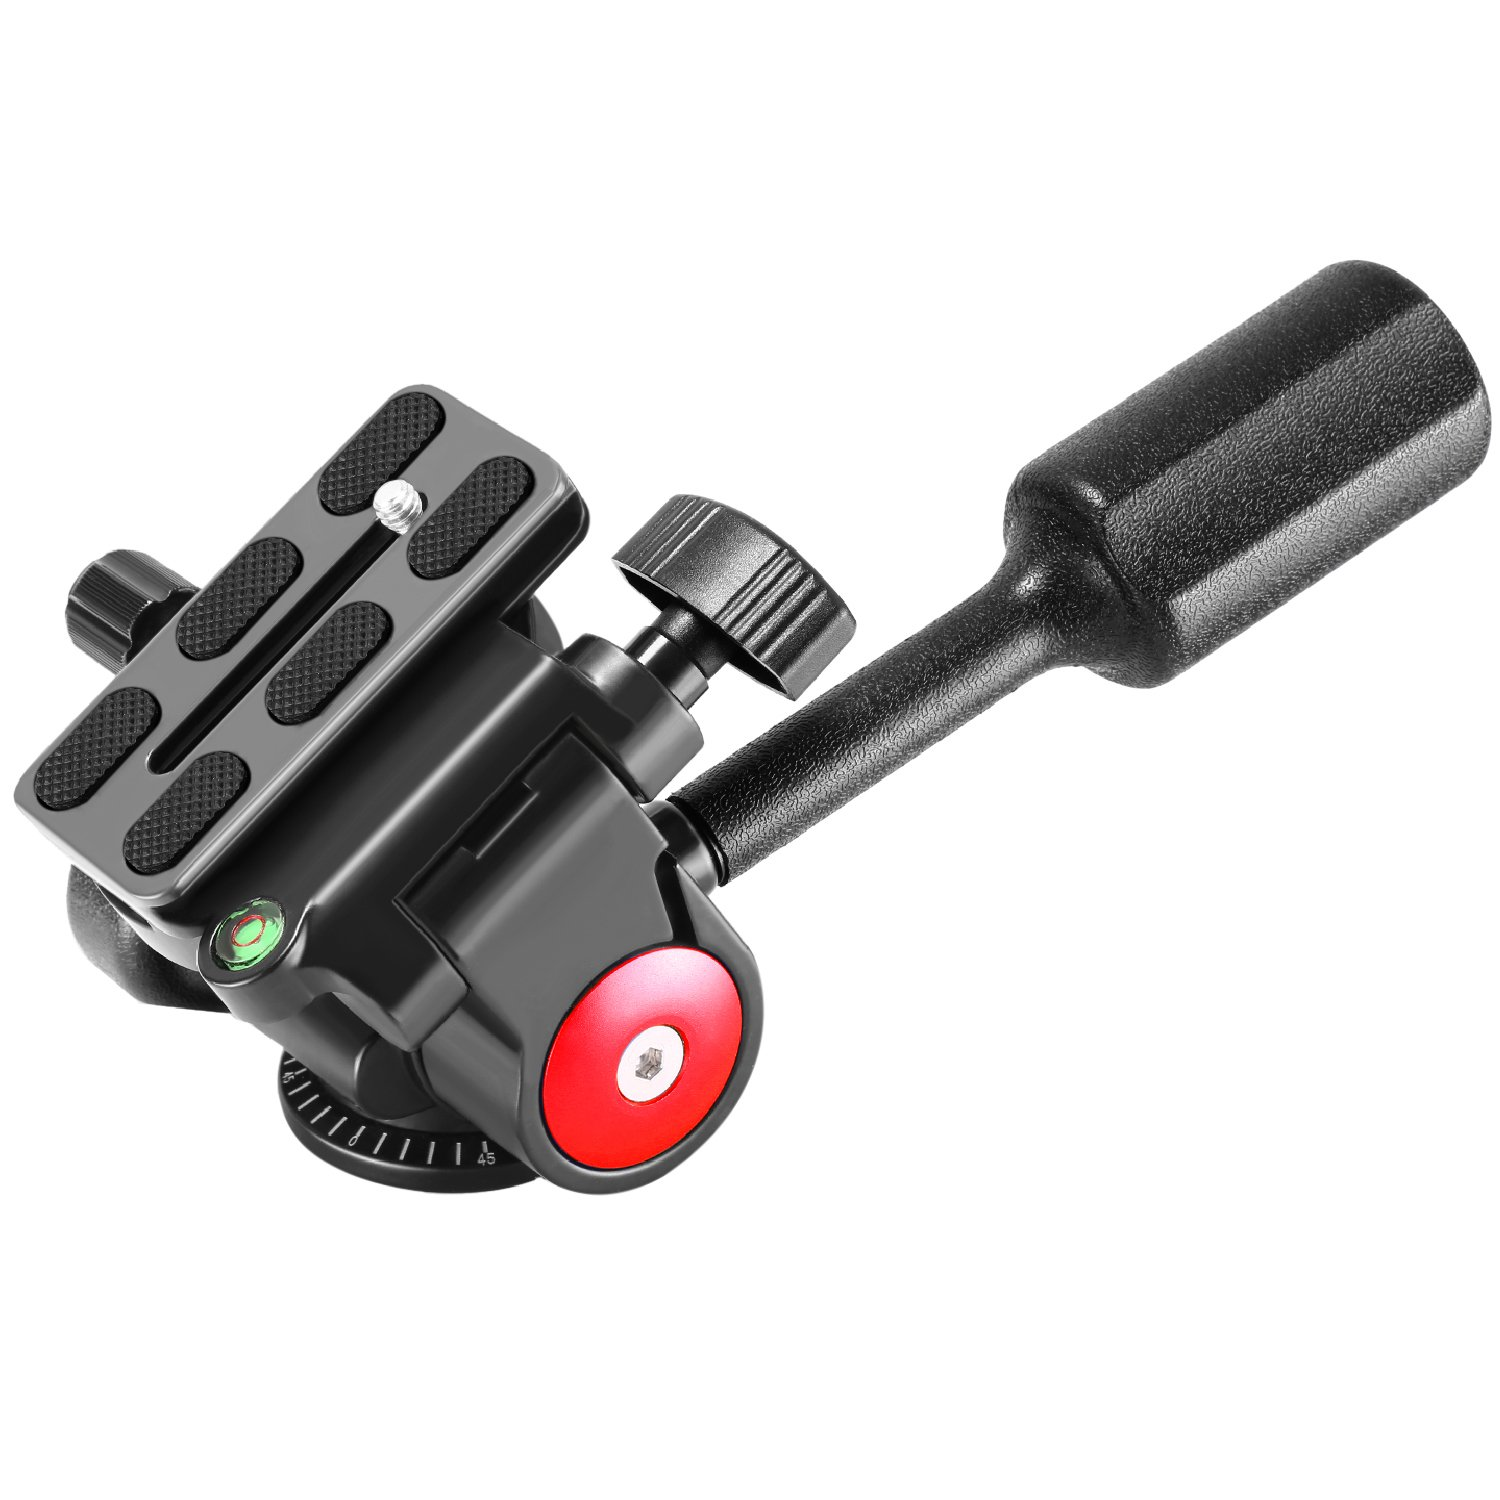 Neewer Single Handle Tripod Ball Head Three-Dimensional 360 Degree Rotation, with 1/4-3/8 Inches Screw for Tripod Monopod Camera Bracket Light Stand, Max Load 22 Pounds/10 Kilograms(Red+Black) by Neewer